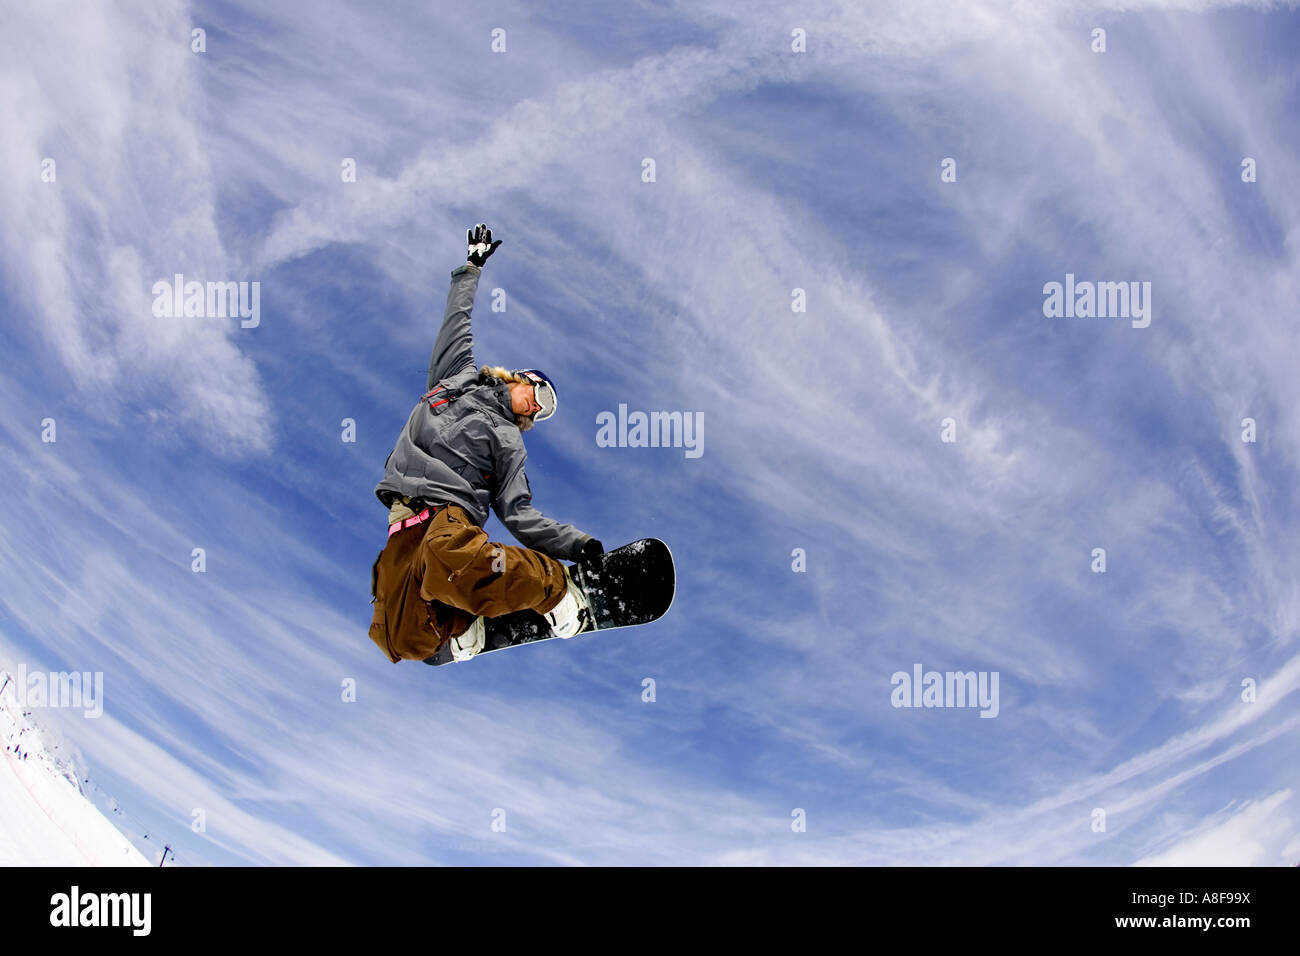 Snowboarder grabs board flying through alpine air. - Stock Image